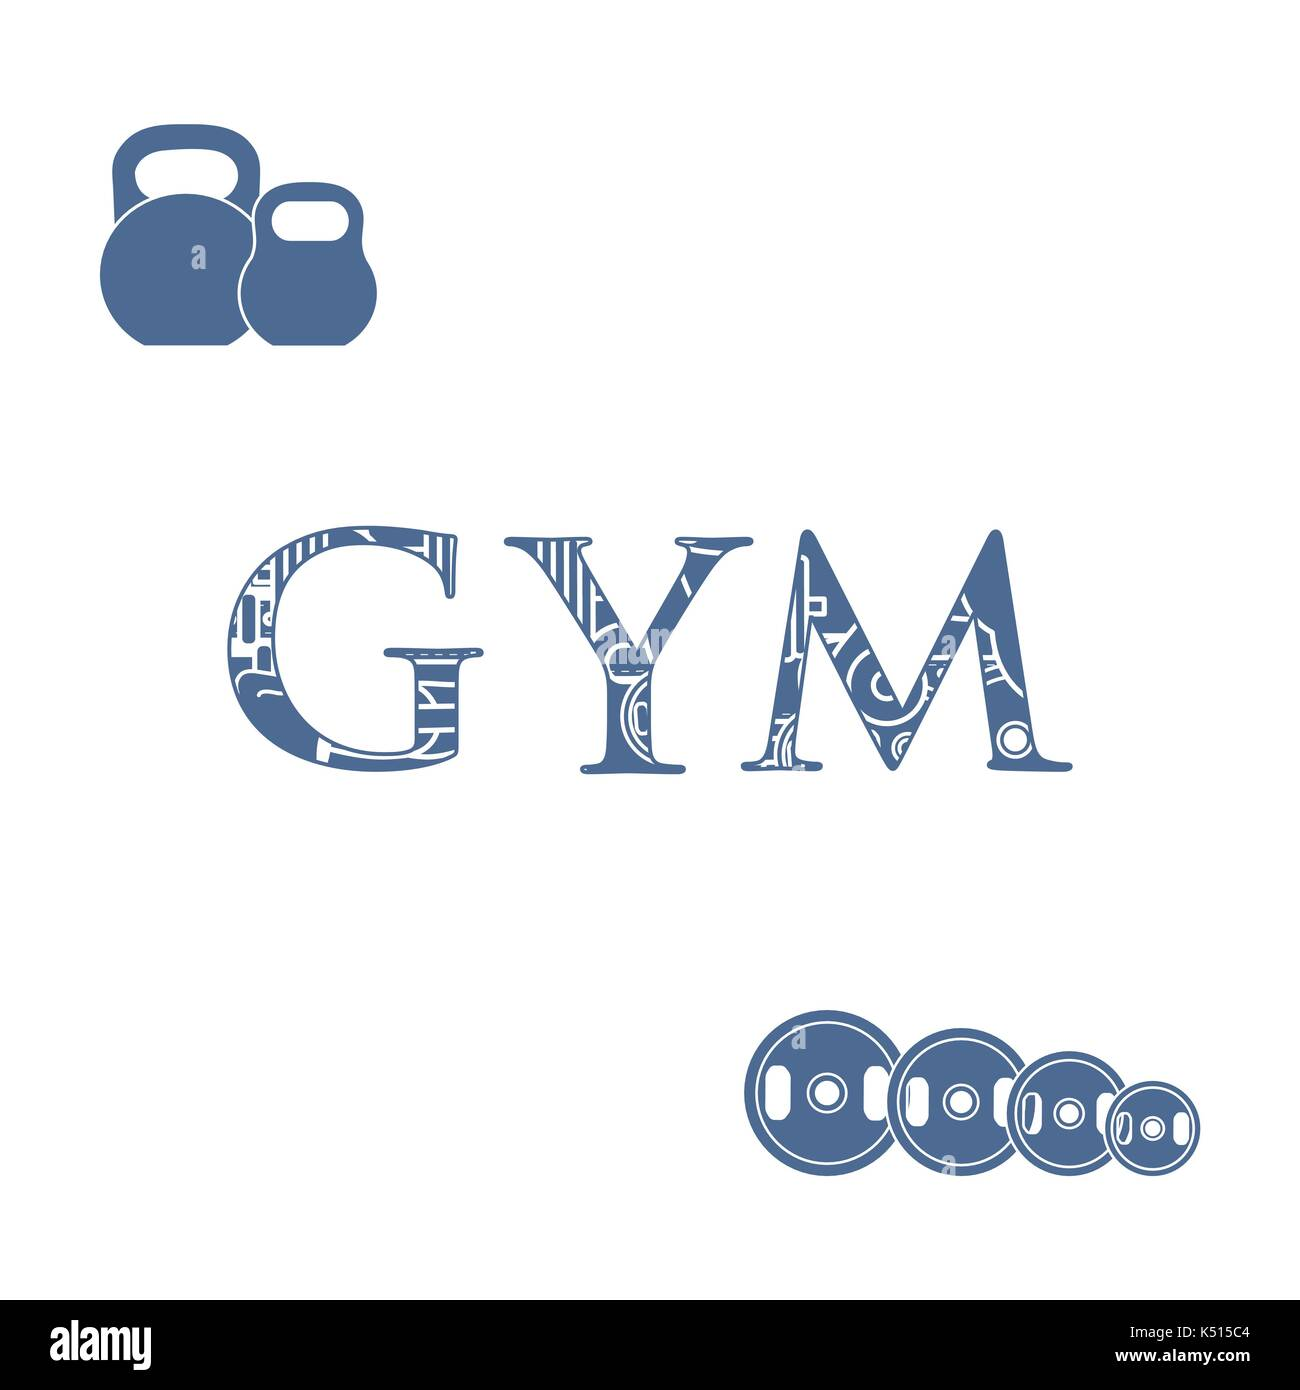 Exercises Stock Vector Images - Alamy